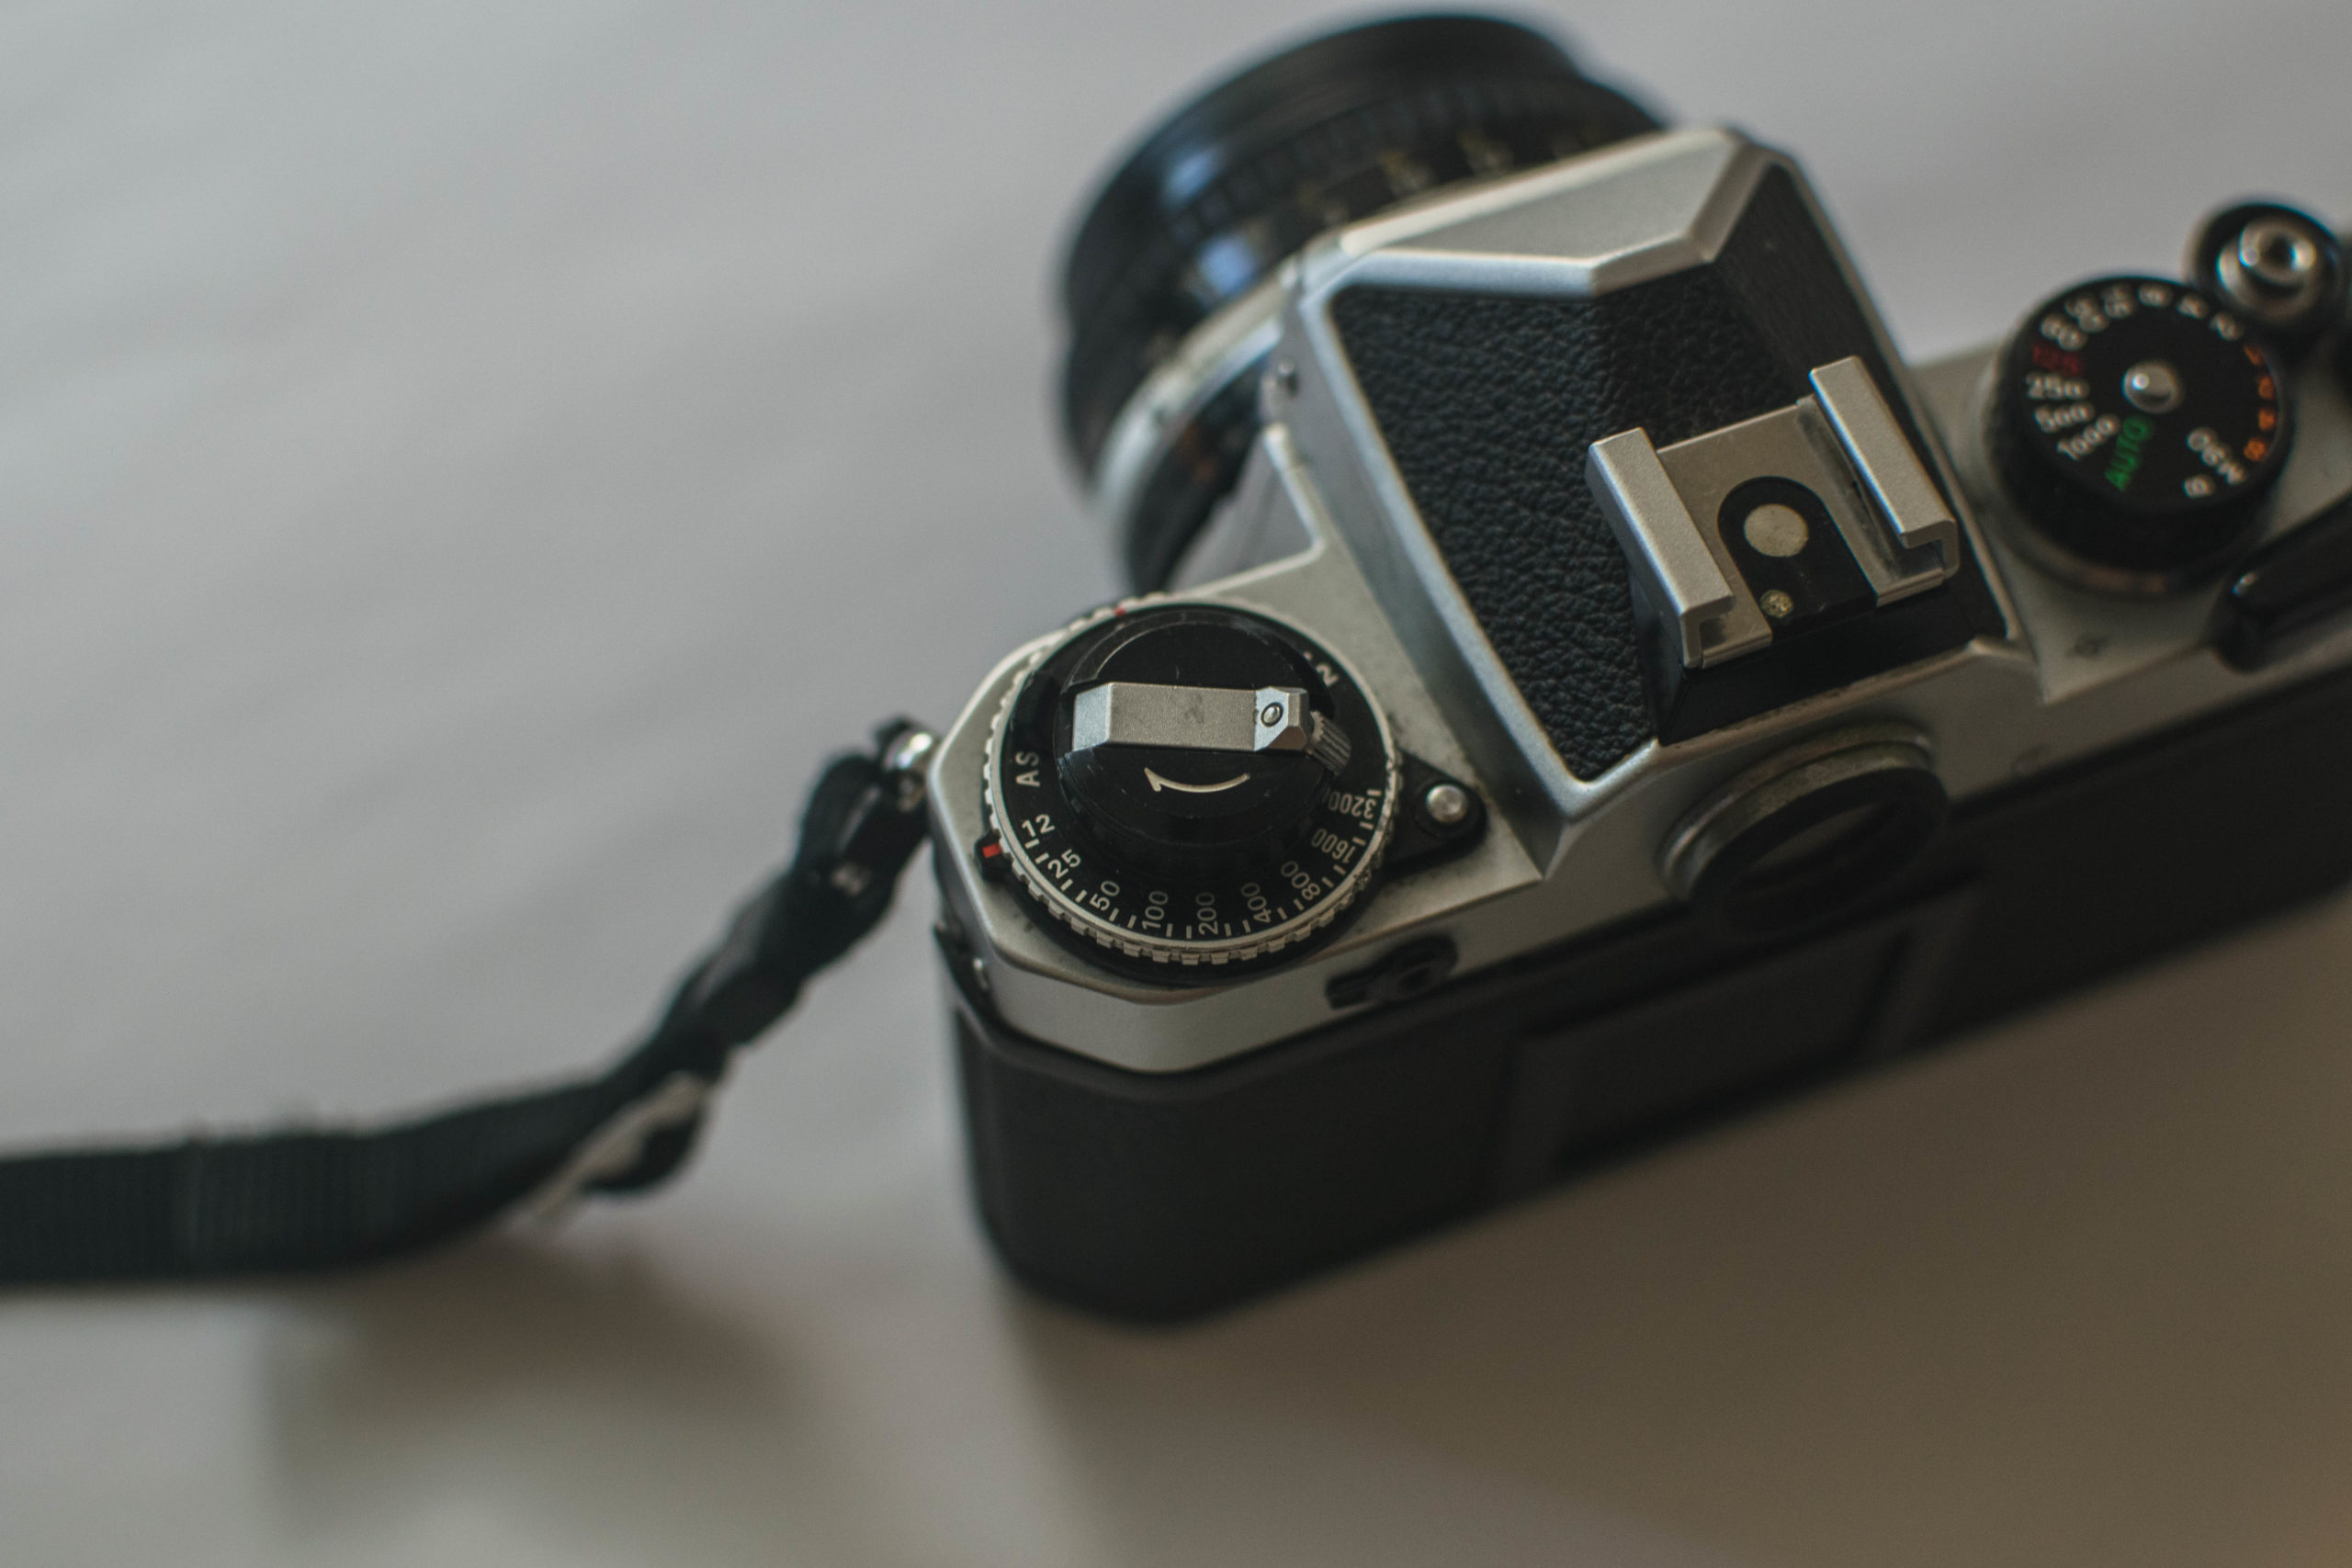 Rewind Knob Tighten - How to Load Film into a 35mm Film Camera - FilterGrade Blog